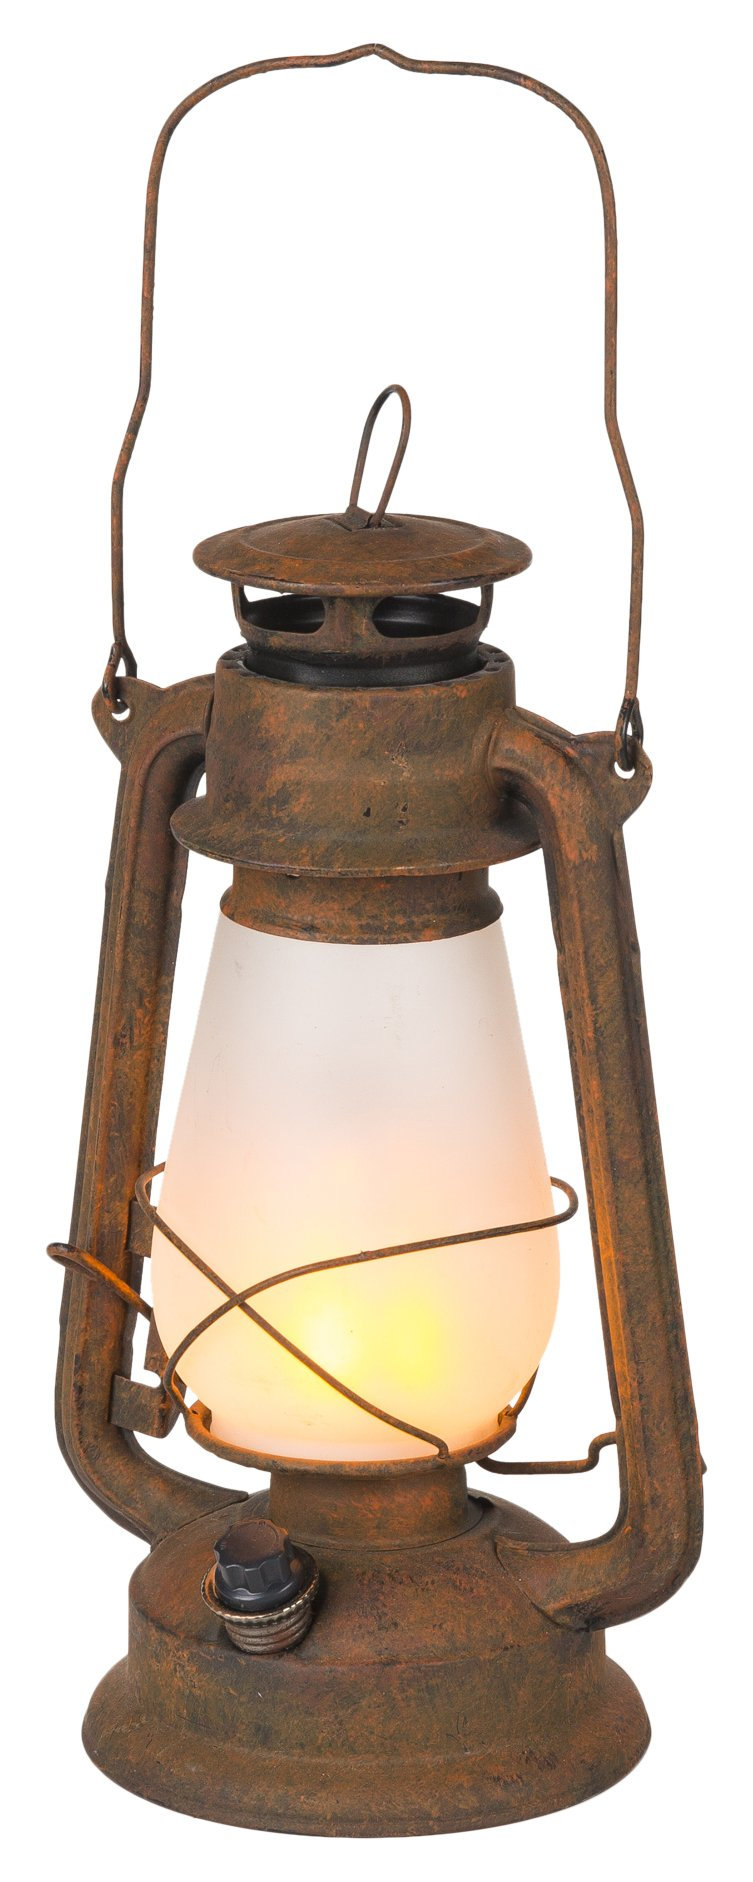 Winsome House WH064 Flaming Lights Antique LED Lantern